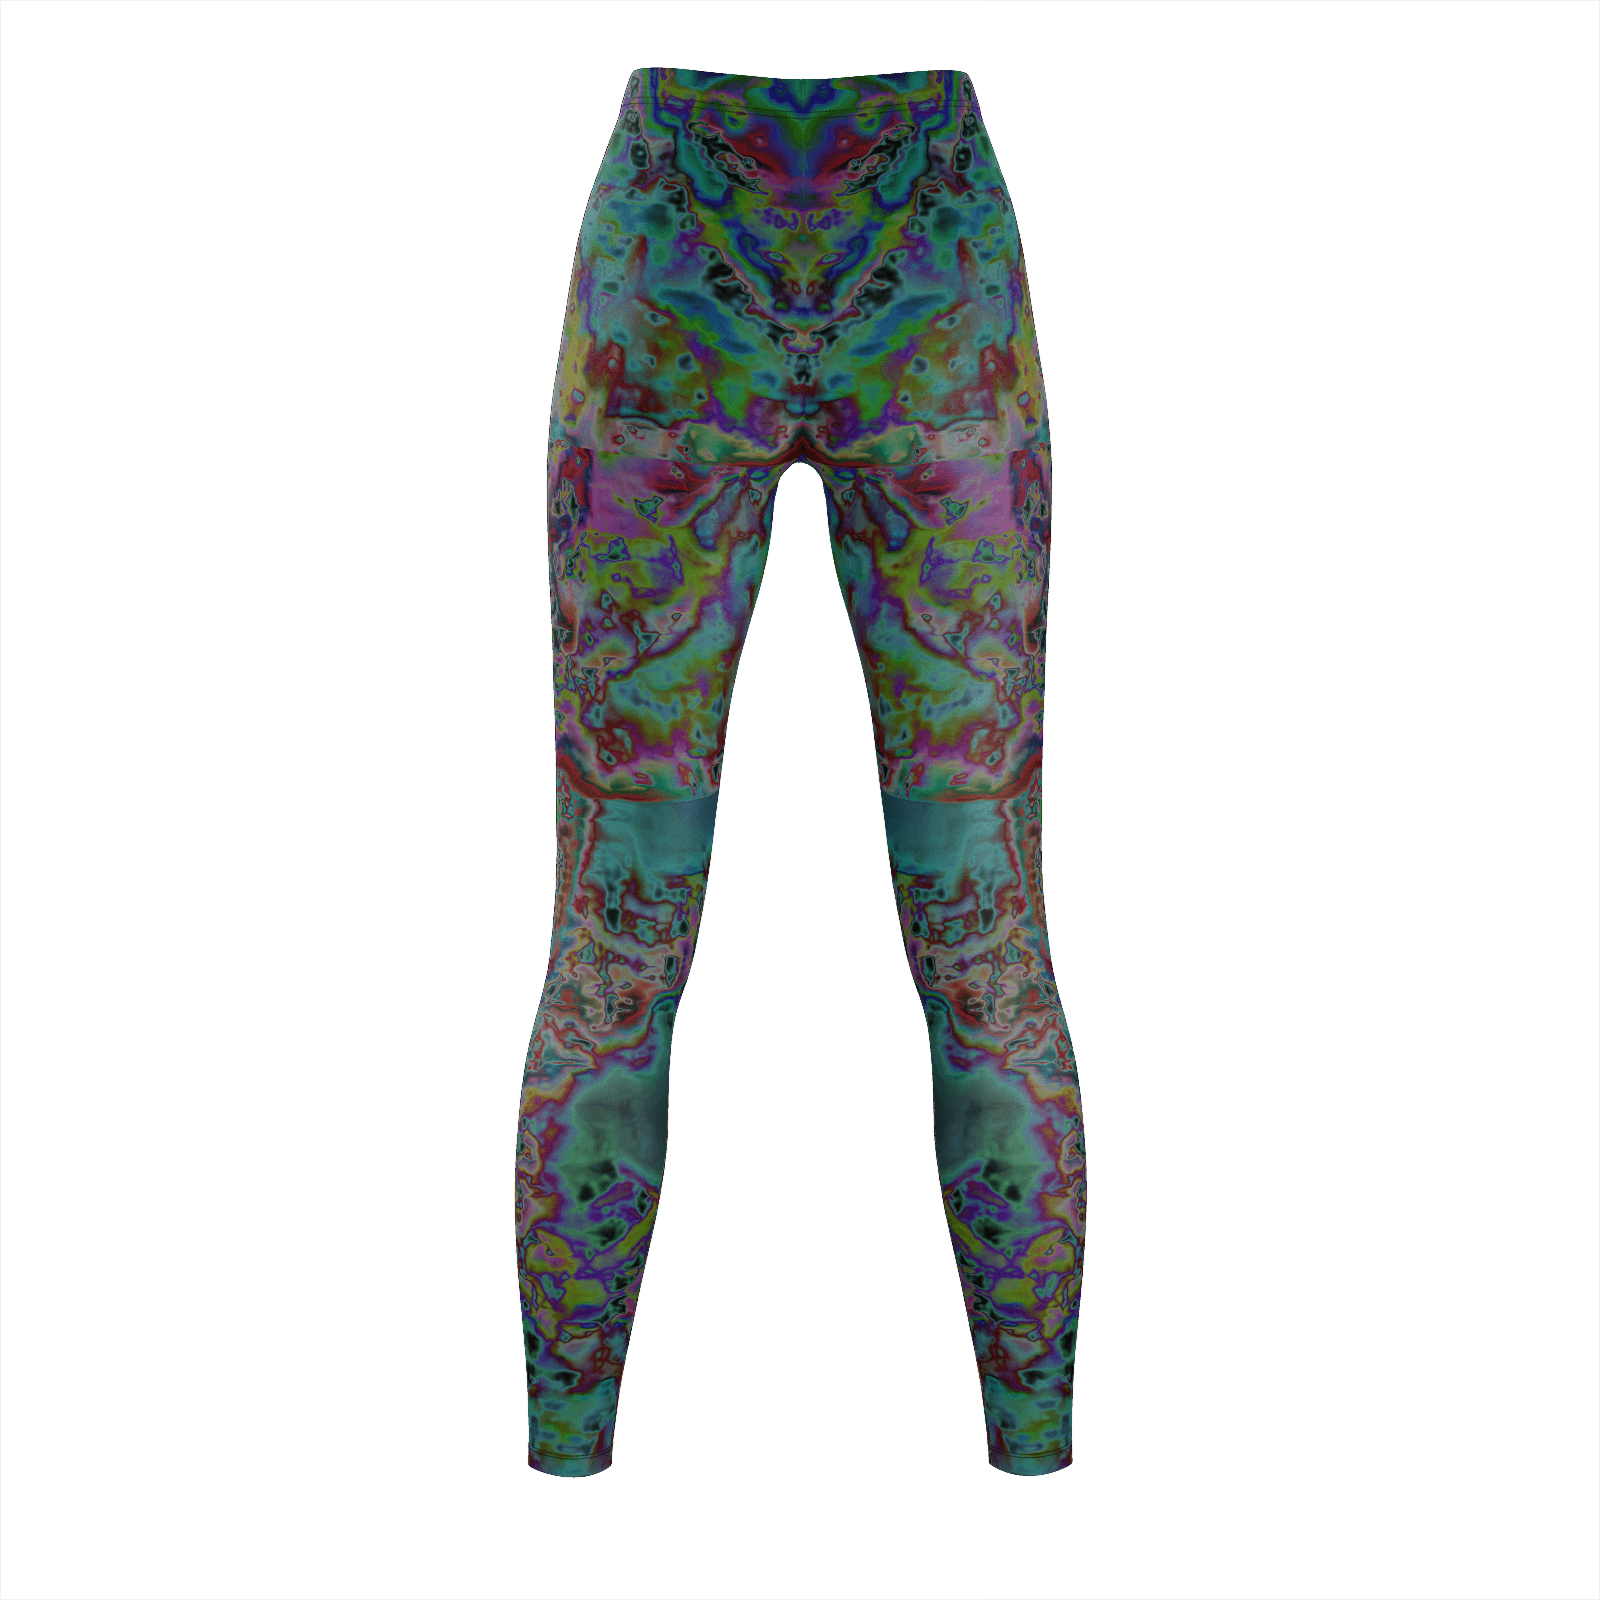 Yoga Sexy MothSpeak Leggings - Yoga Sexy